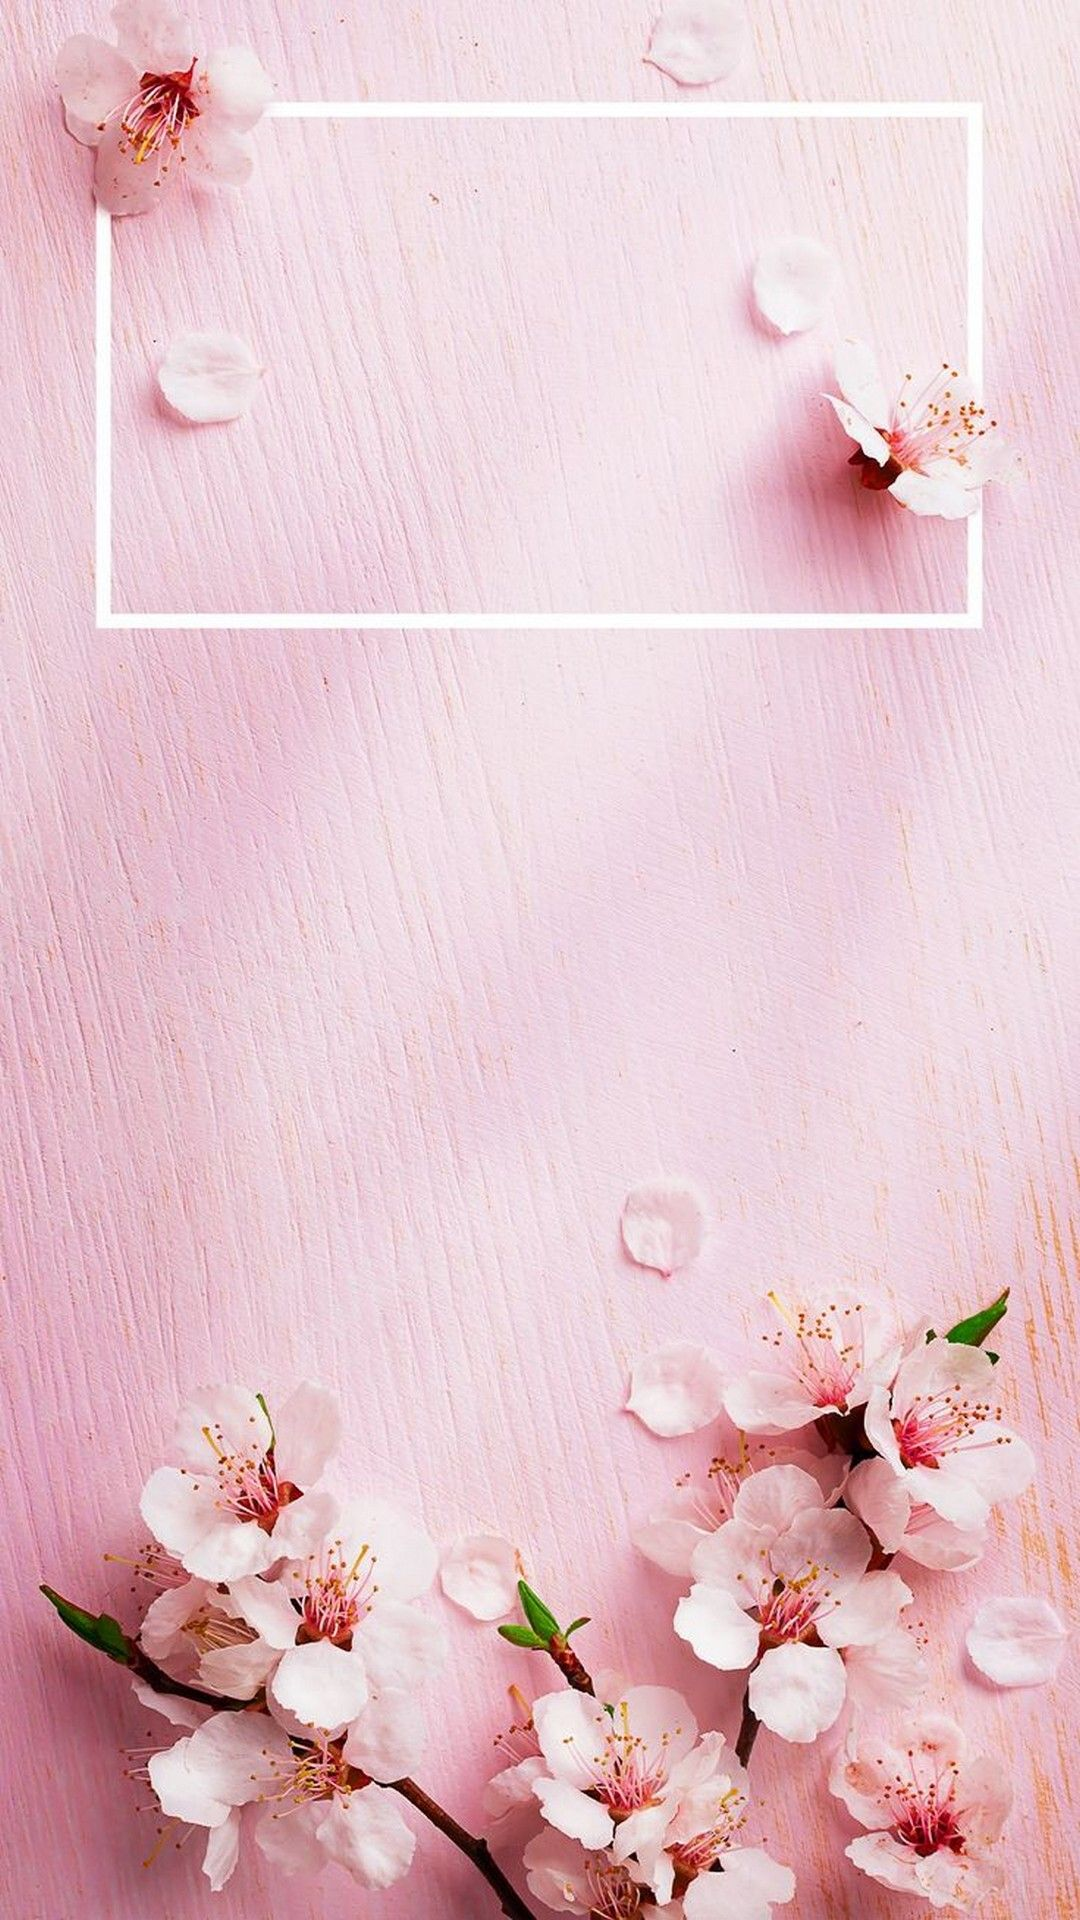 Iphone X Wallpaper Rose Gold Lock Screen Pattern Pinterest